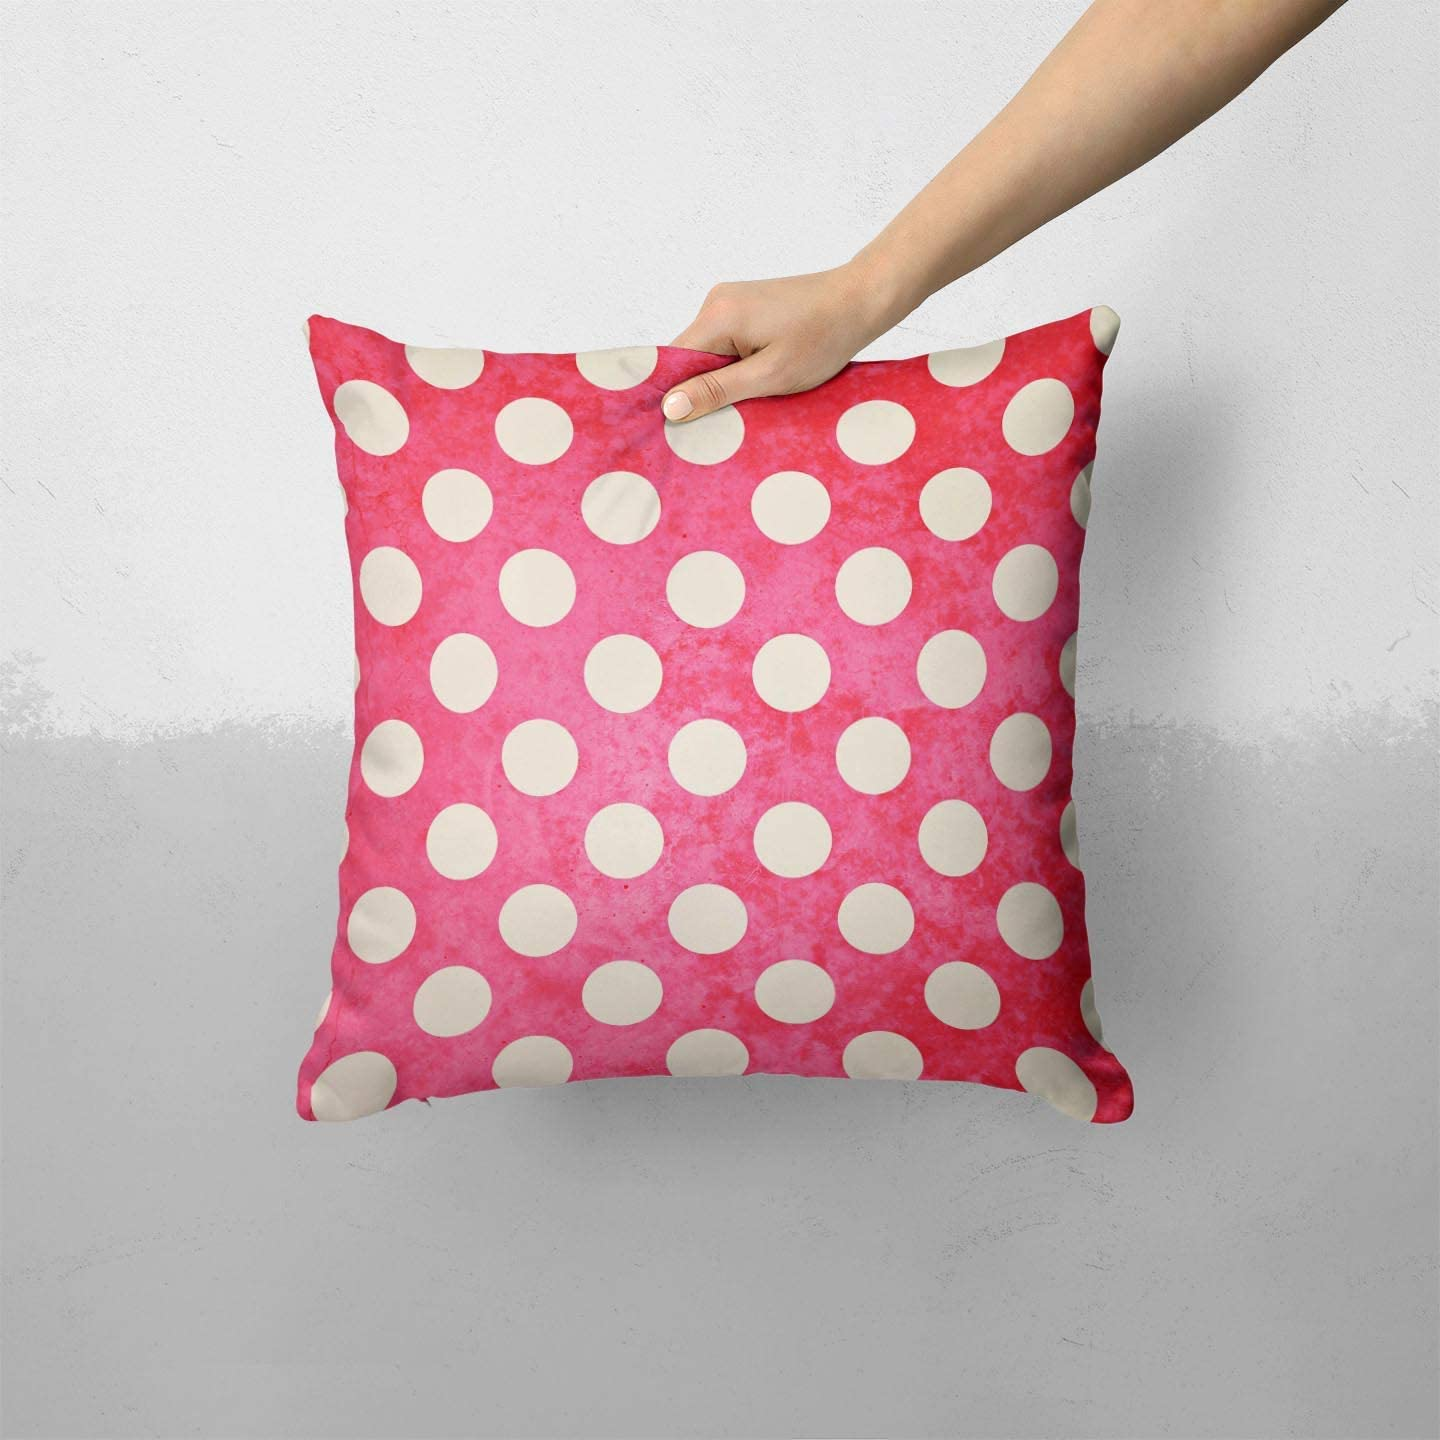 Antique Red and White Polkadot Pattern - Custom Decorative Home Decor Indoor or Outdoor Throw Pillow Cover Plus Cushion Set for Sofa, Bed or Couch (Pillow CASE Cover Plus Cushion)